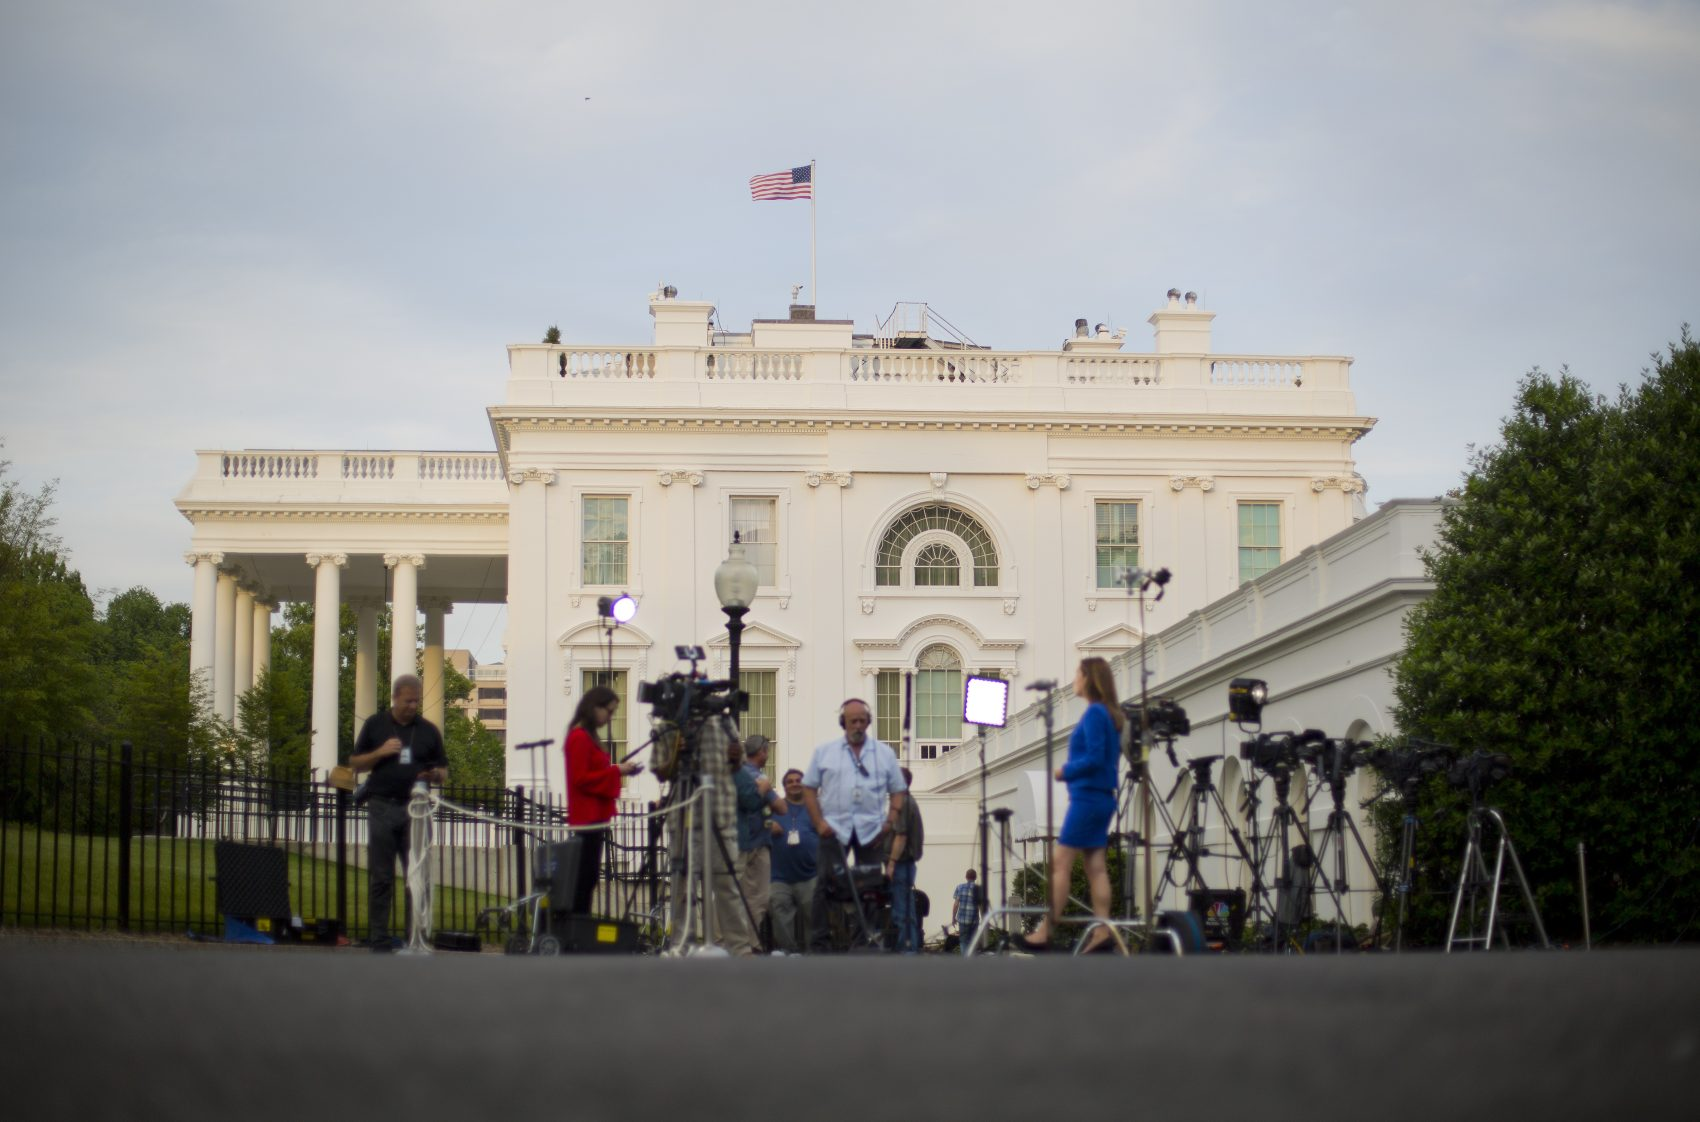 The White House distracts, talk of impeachment abounds and malicious software makes its way around the globe. All that and more in Tom Keane's roundup of the week in the news. Pictured: Television network crews begin their evening news broadcast outside the White House, Wednesday, May 17, 2017. (Pablo Martinez Monsivais/AP)